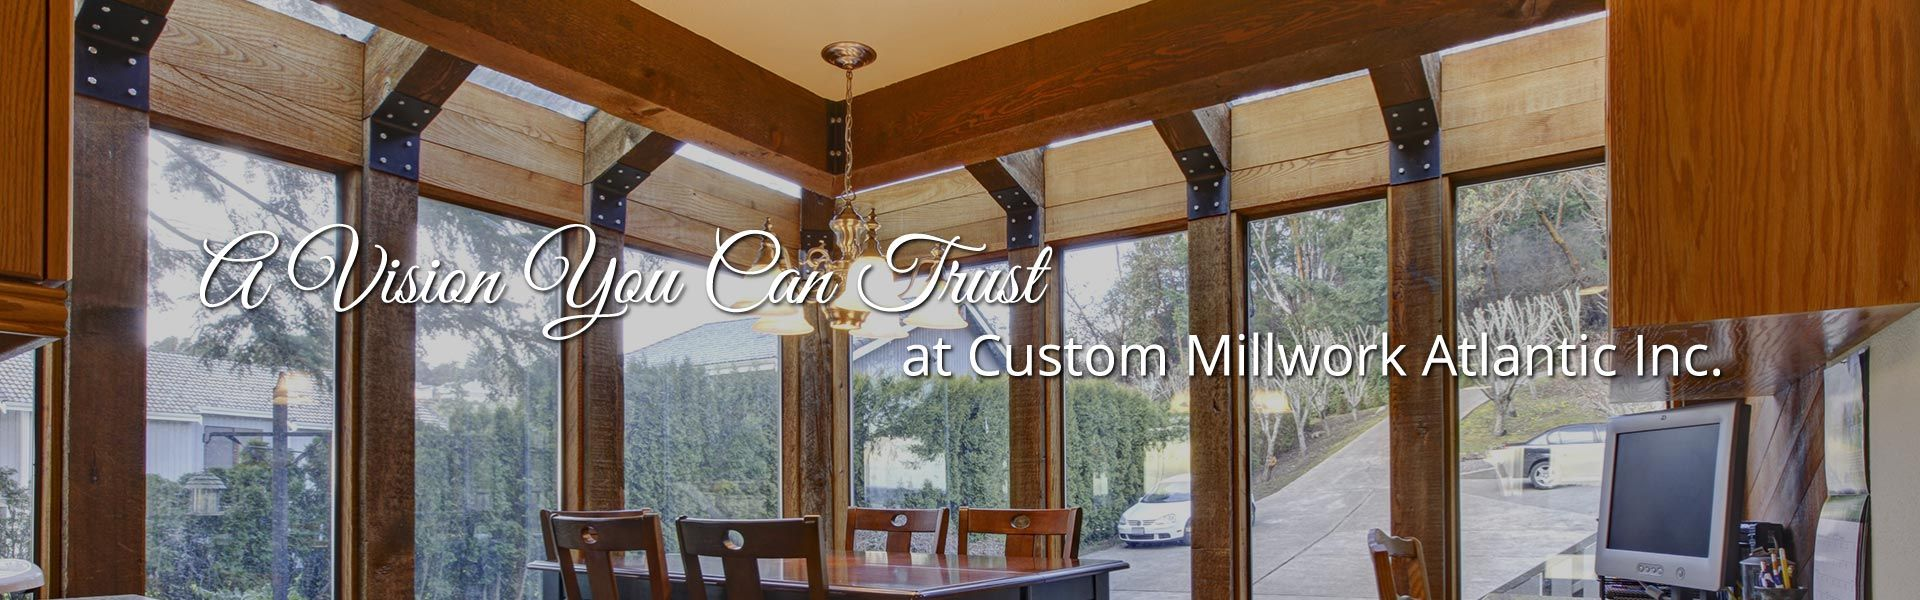 A Vision You Can Trust at Custom Millwork Atlantic Inc. | kitchen with custom moulding